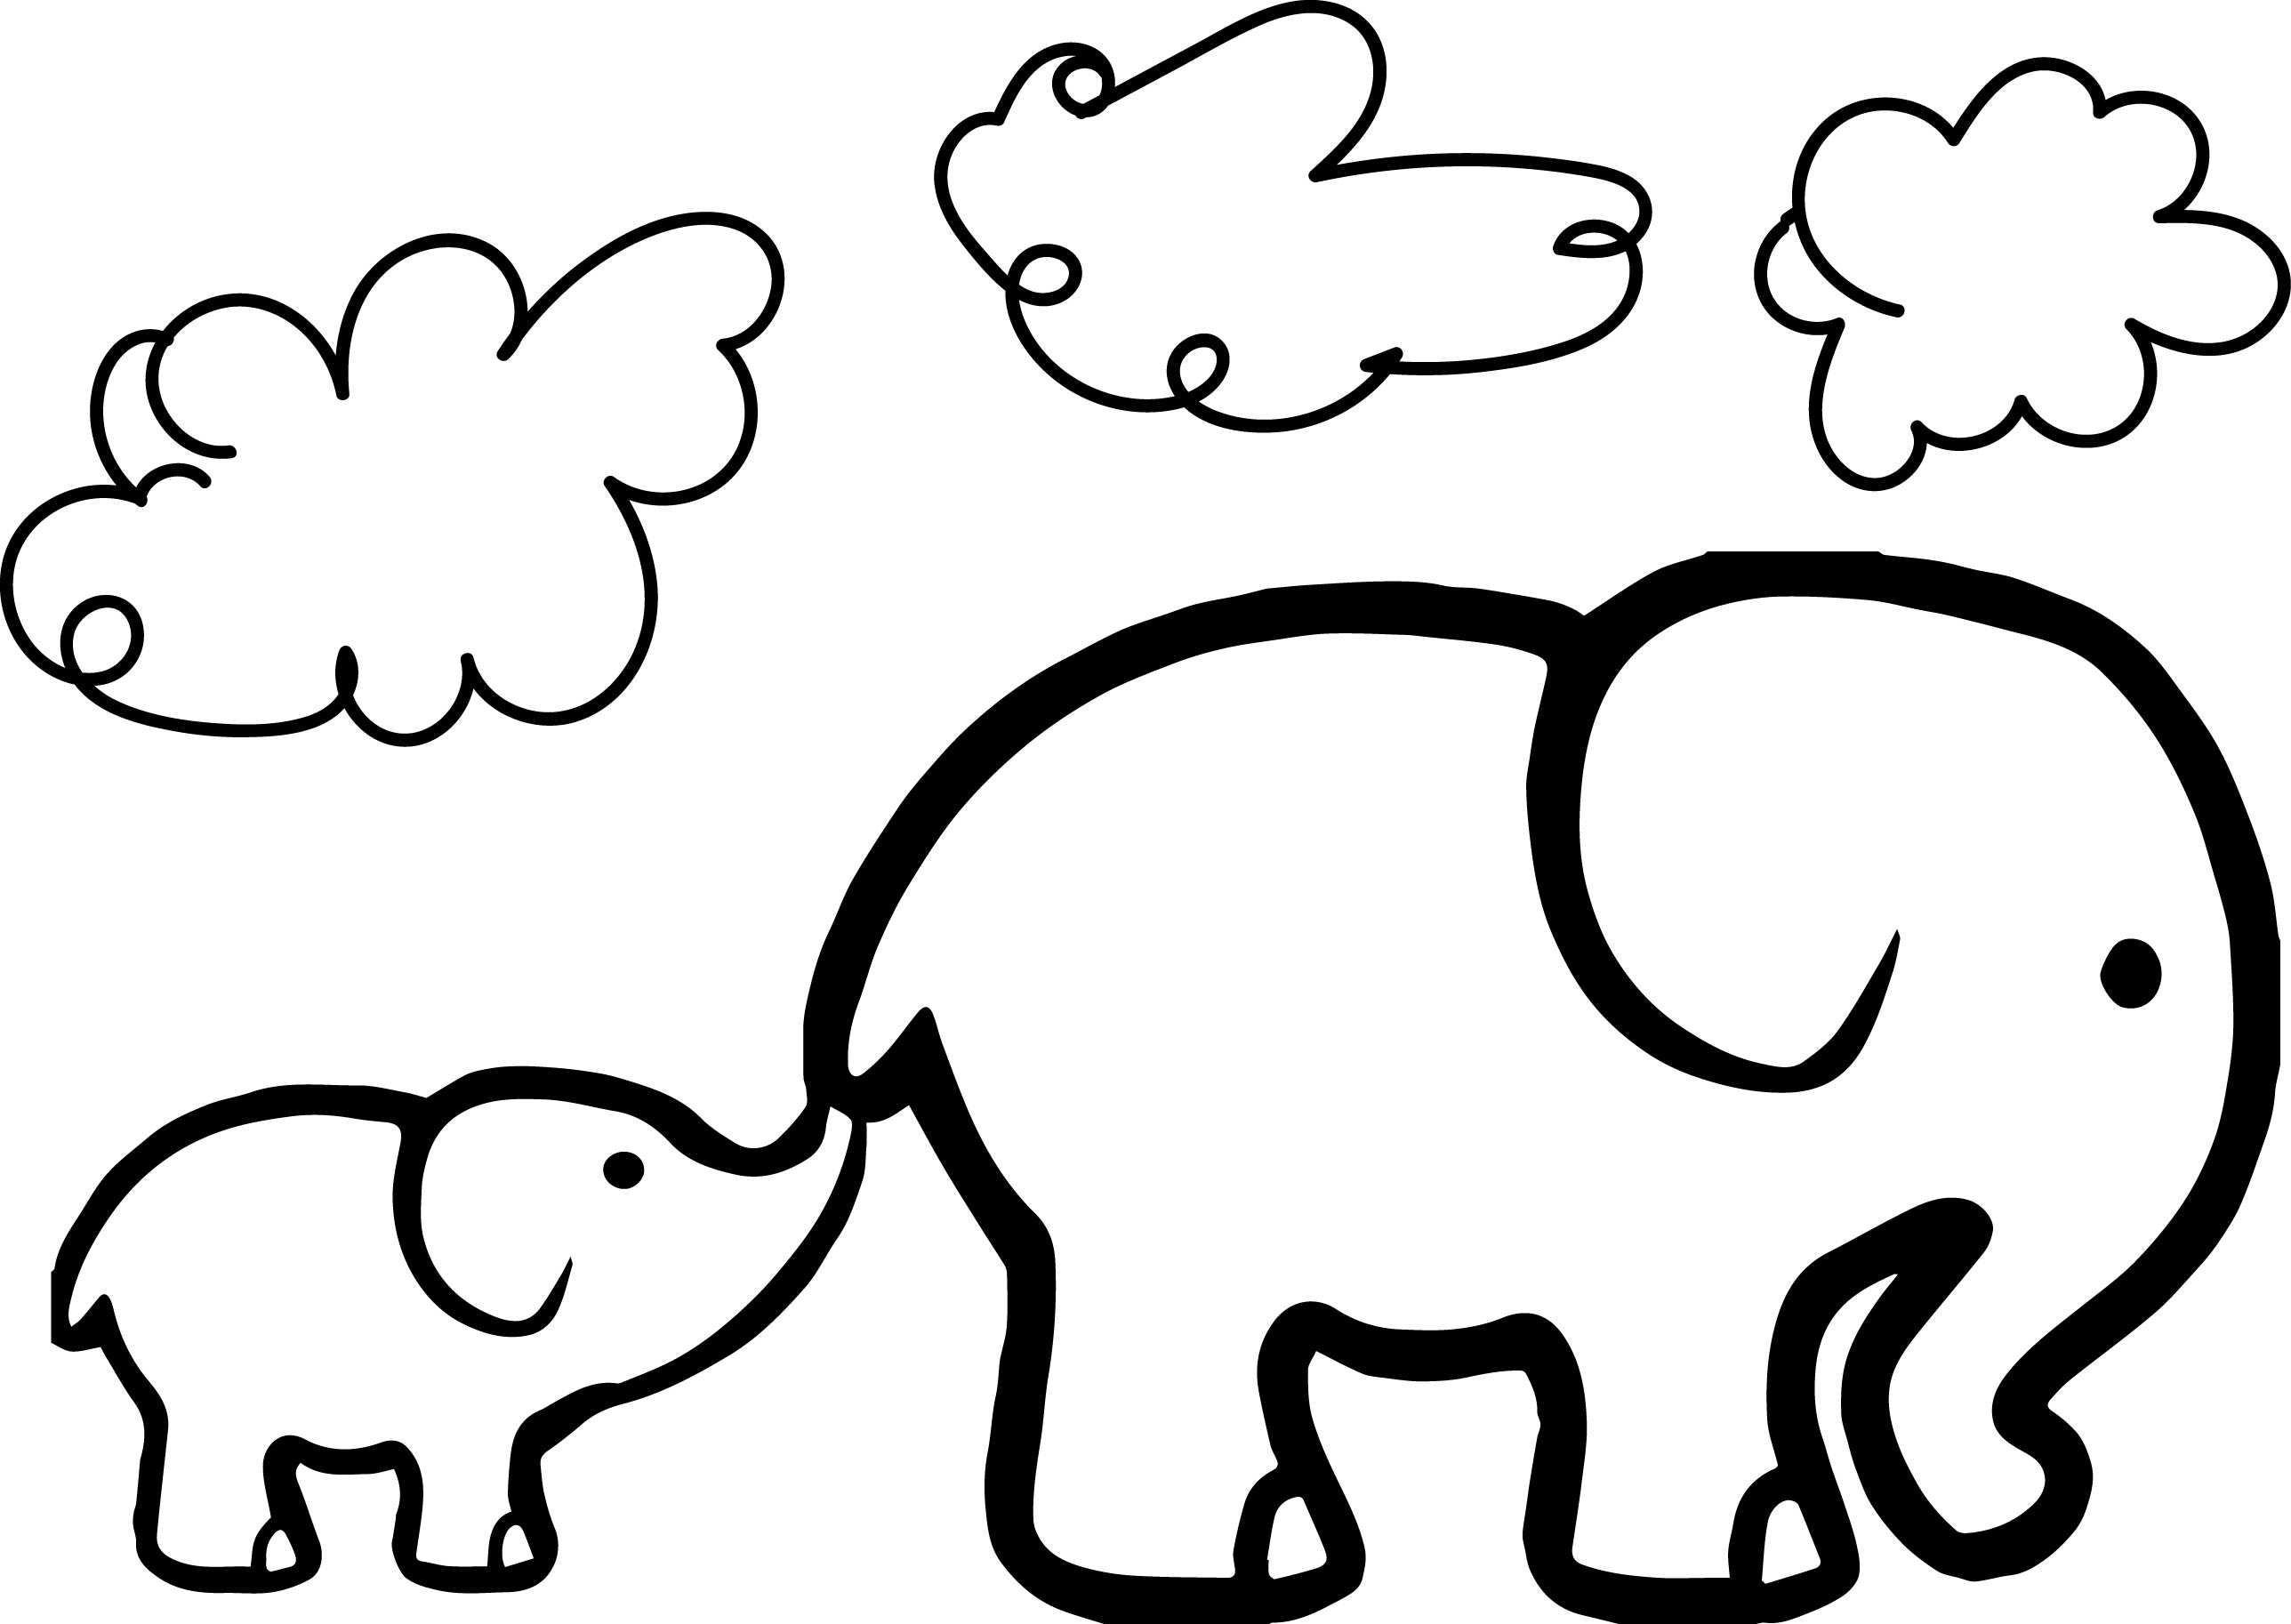 colouring picture of elephant elephant drawing tumblr at getdrawings free download picture colouring elephant of